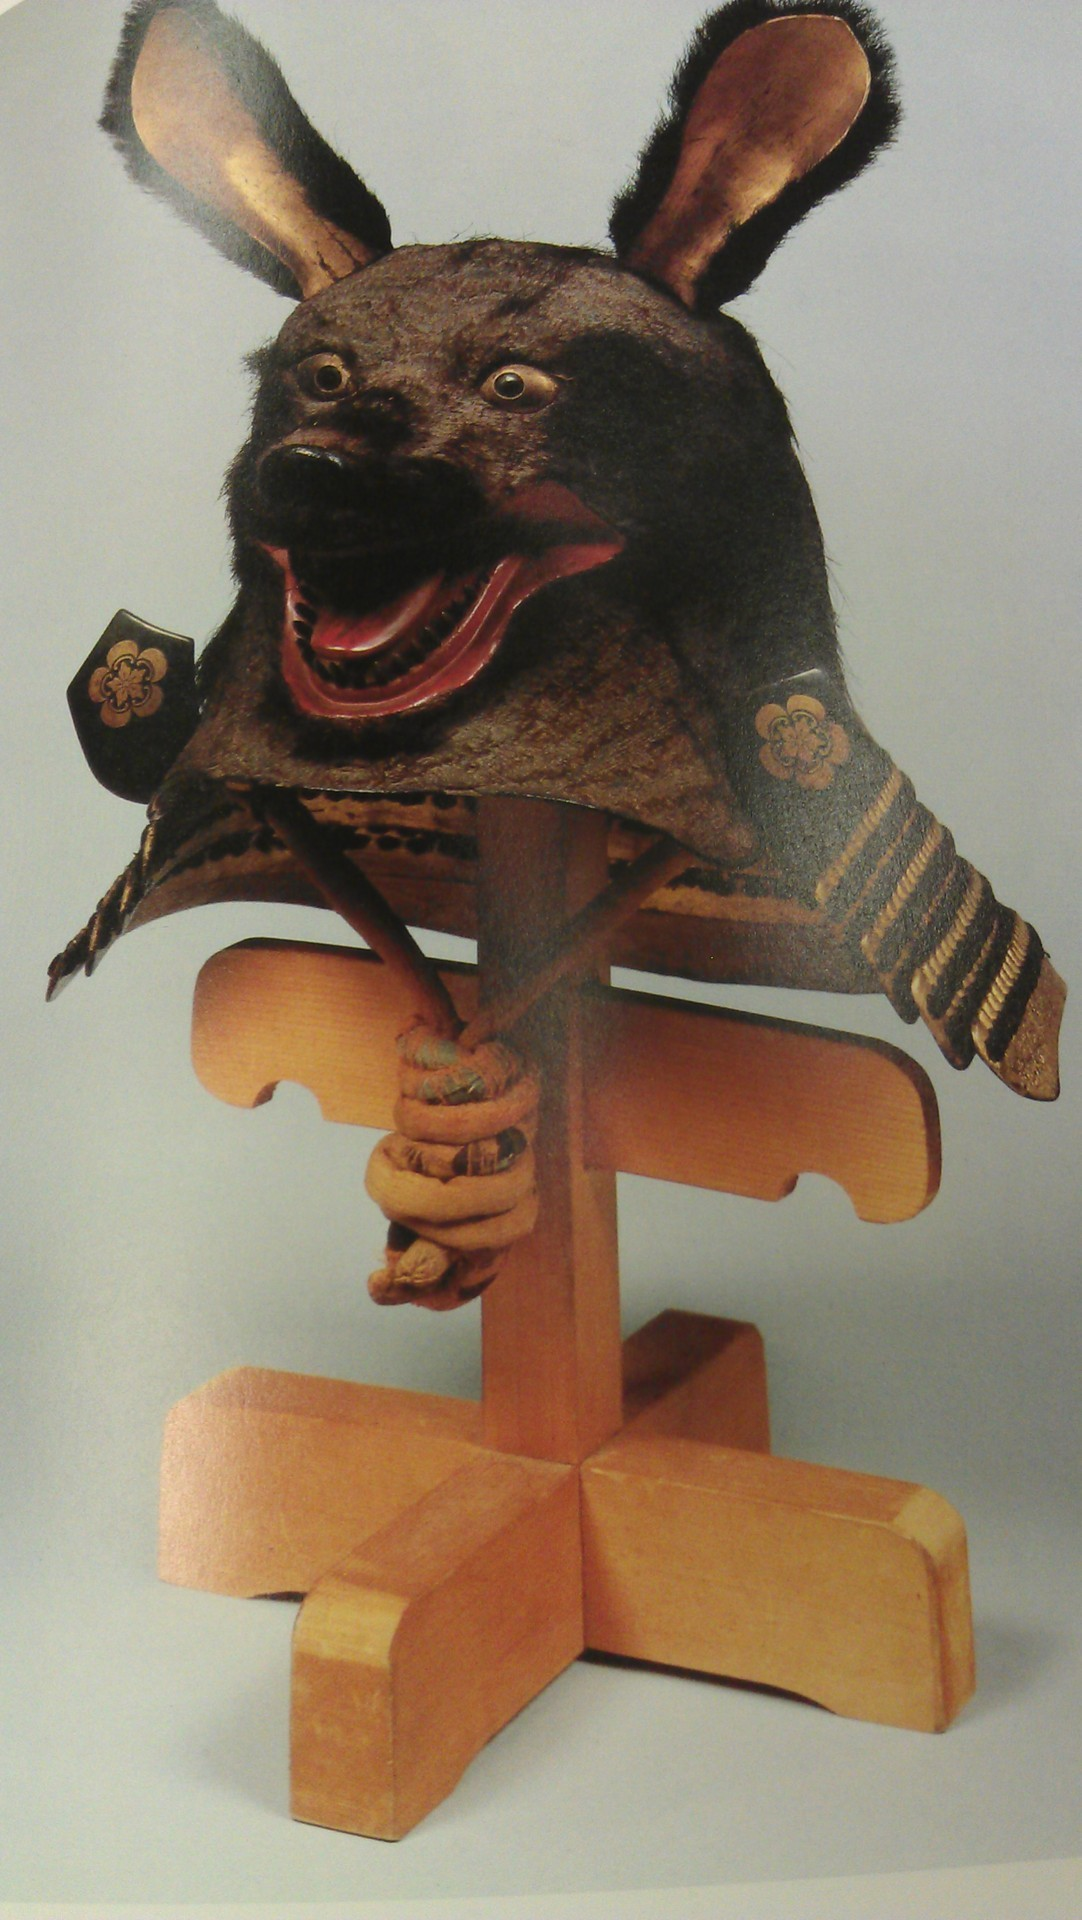 17th century, Edo period, A Japanese helmet, fashioned to resemble a bear. Book: Spectacular Helmets of Japan 16Th-19th Century